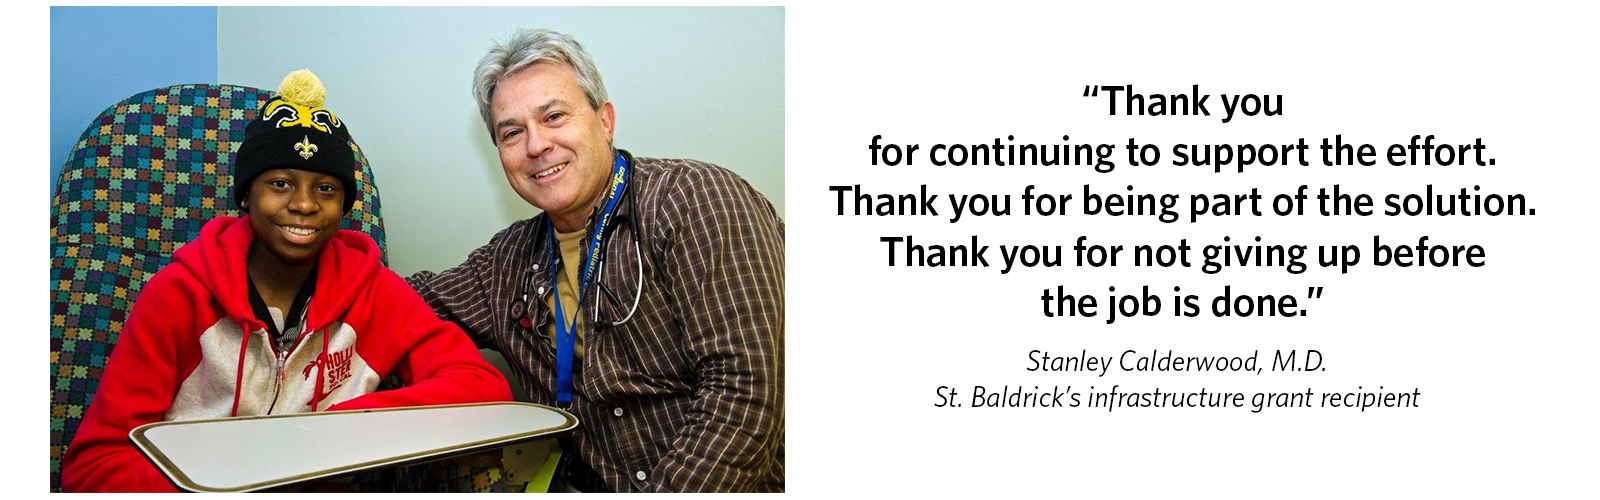 'Thank you for continuing to support the effort. Thank you for being part of the solution. Thank you for not giving up before the job is done.' Stanley Calderwood, M.D., St. Baldrick's infrastructure grant recipient